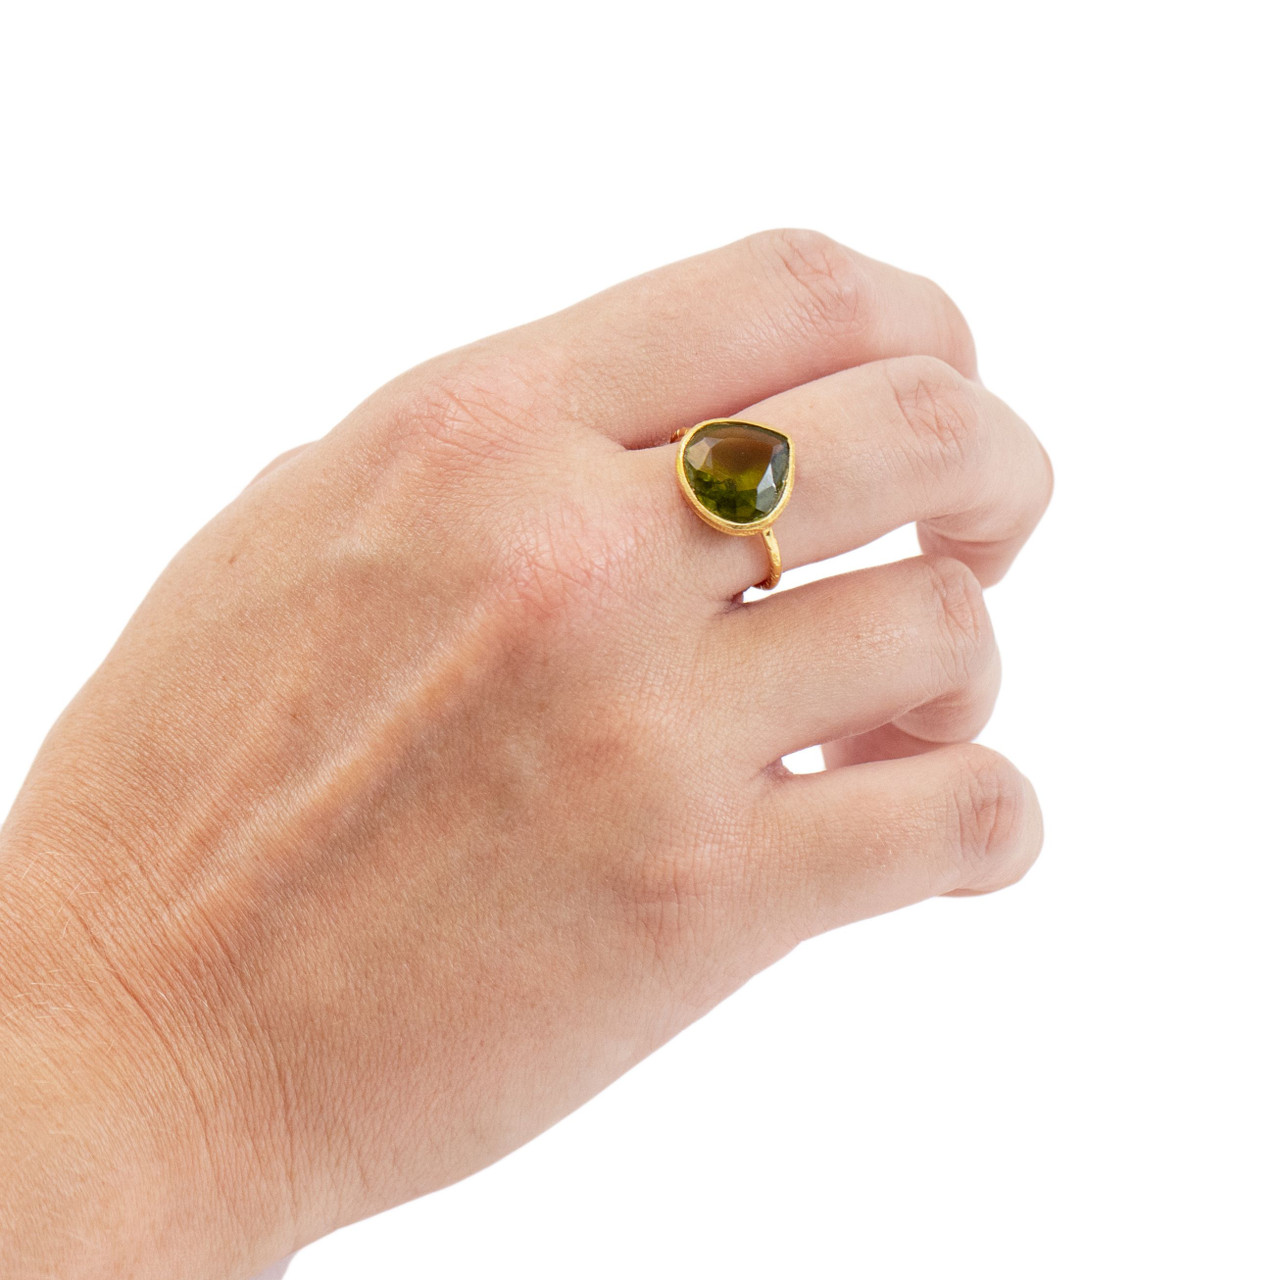 Gold Plated Ring with Green Tourmaline Crystal